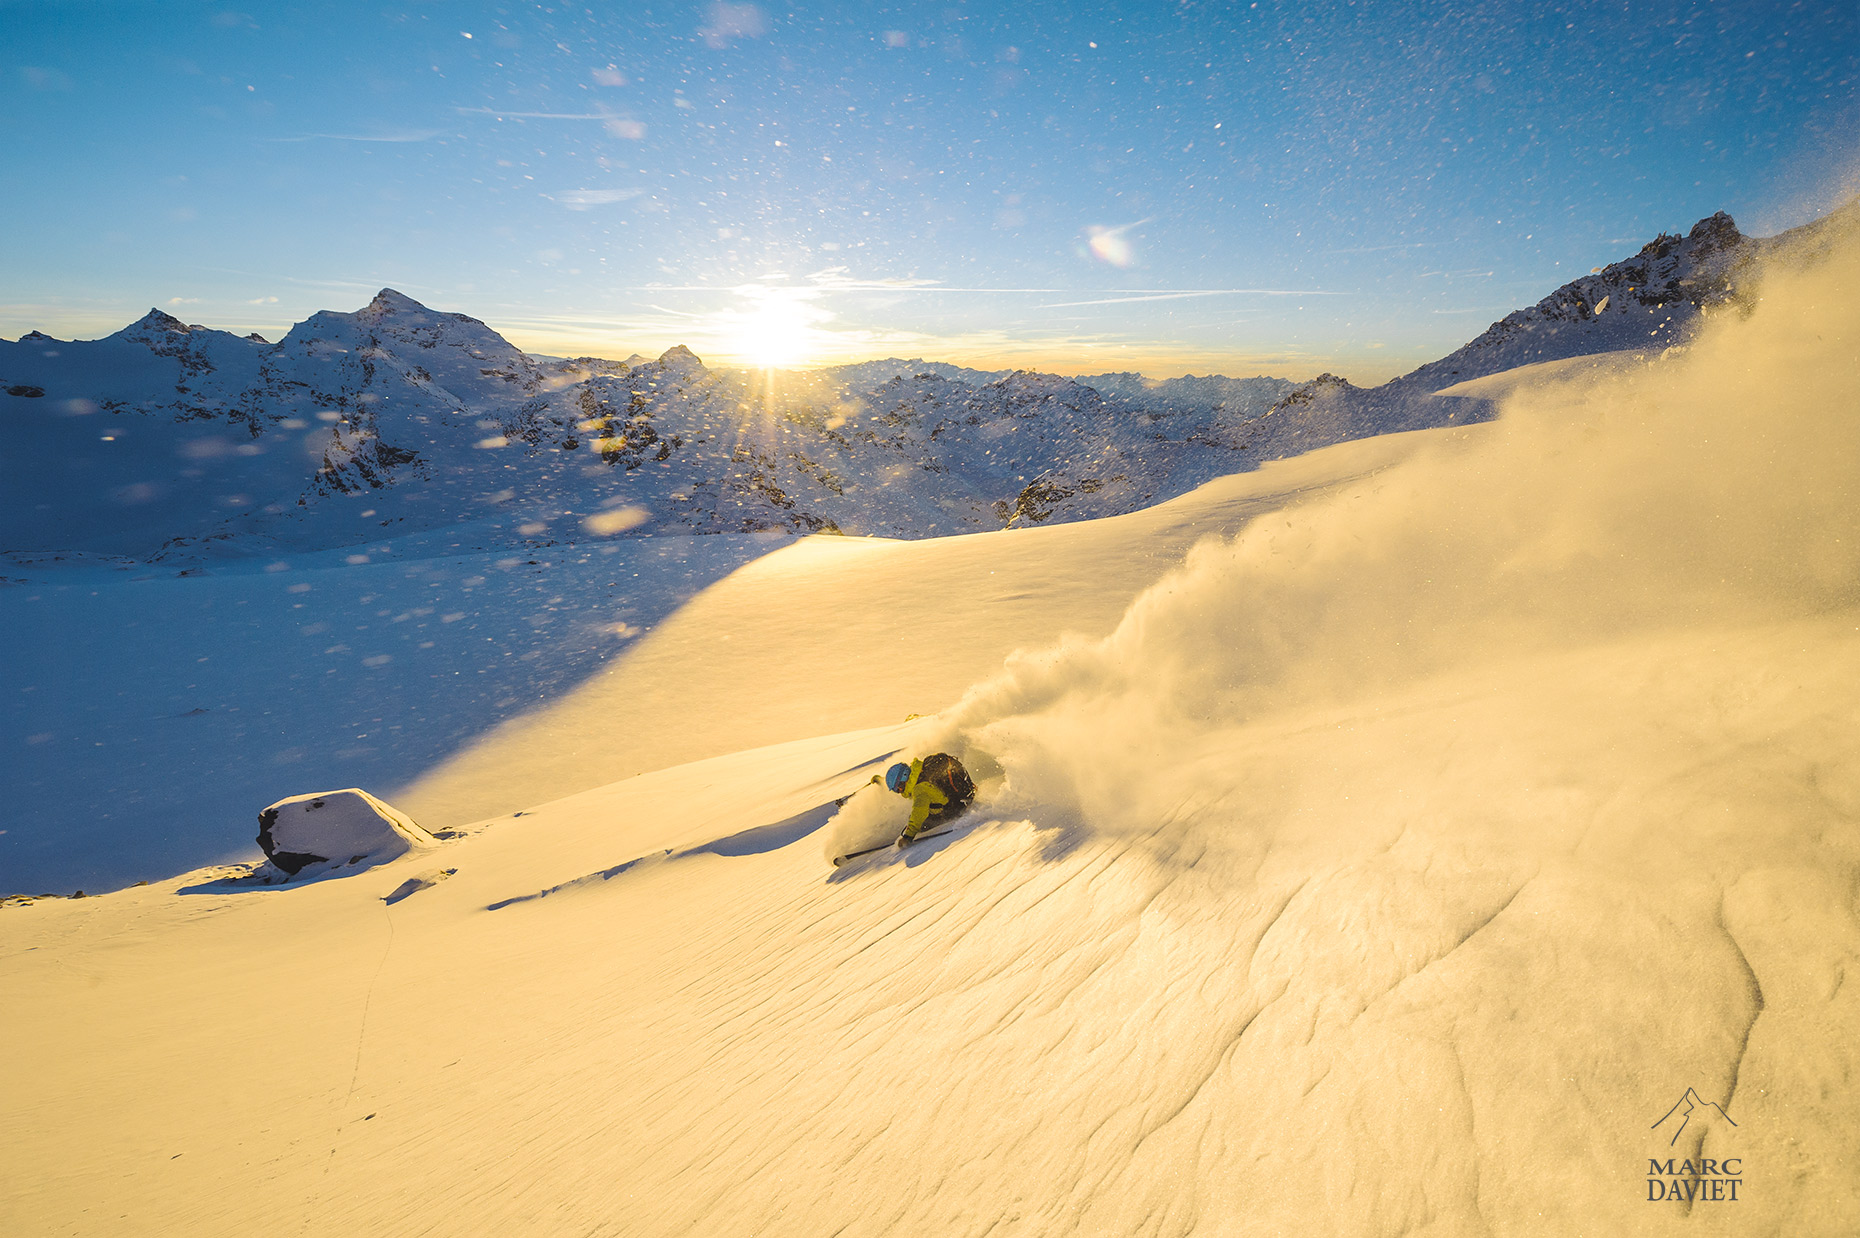 Freeride - Val Thorens - Marc Daviet Photography